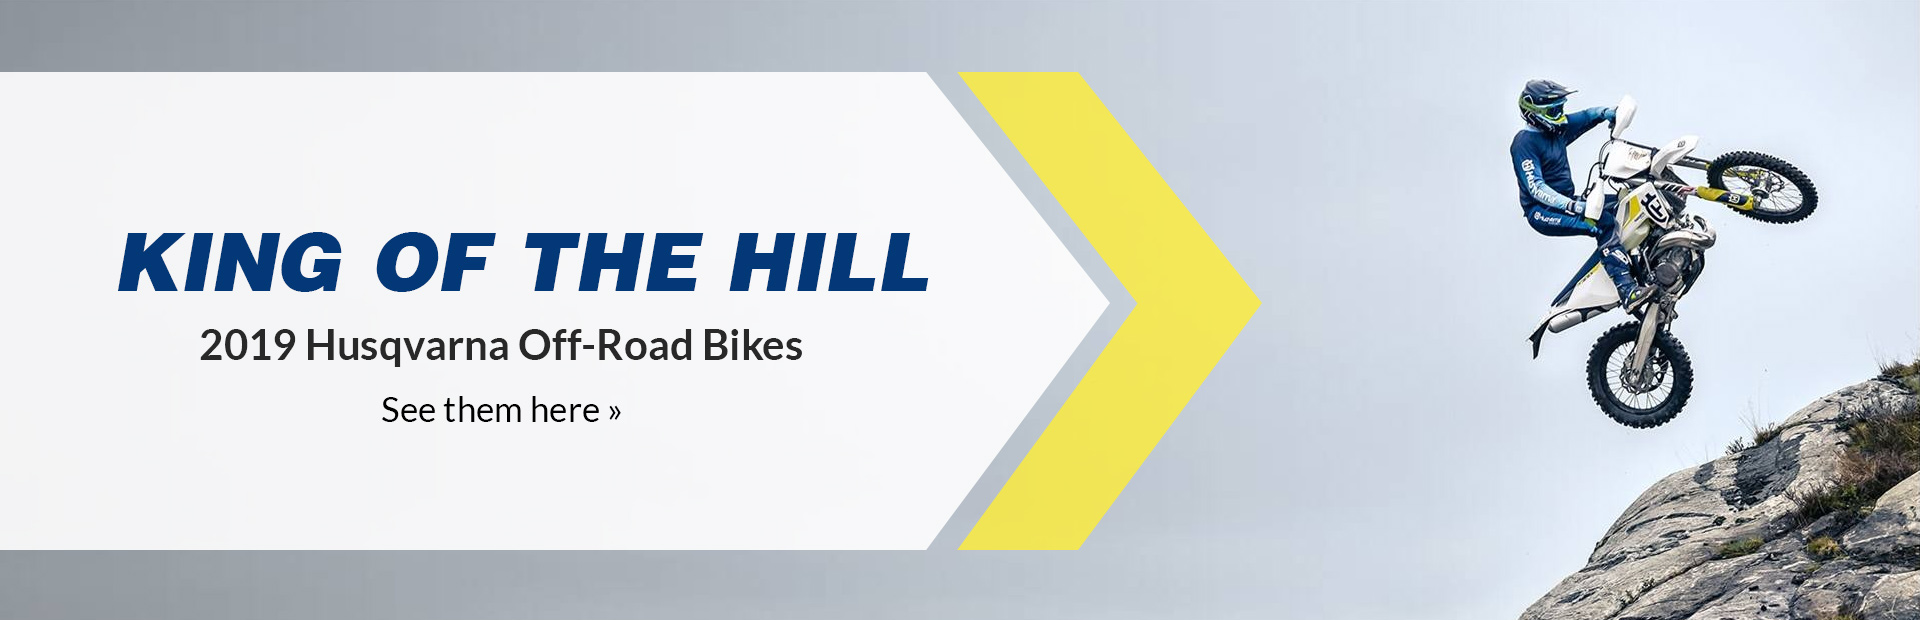 King of the Hill: 2019 Husqvarna Off-Road Bikes. Click here to view the models.